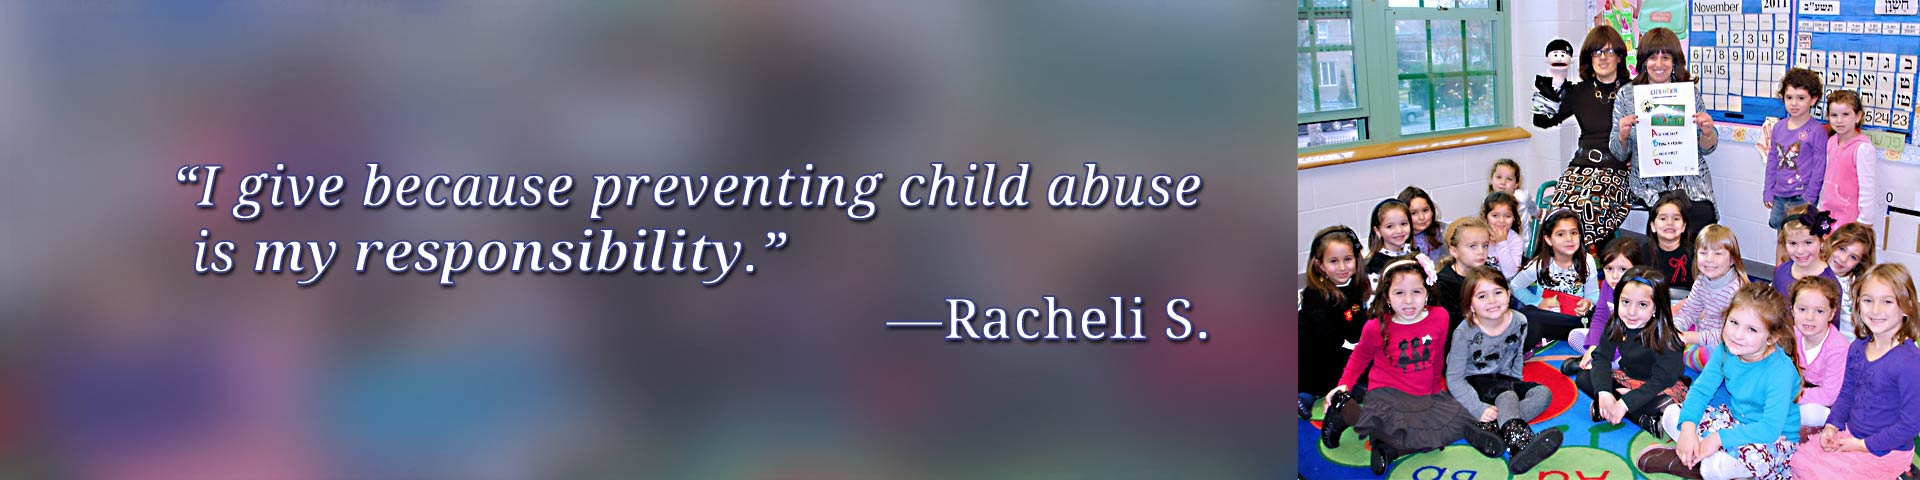 I give because preventing child abuse is my responsibility — Racheli S.